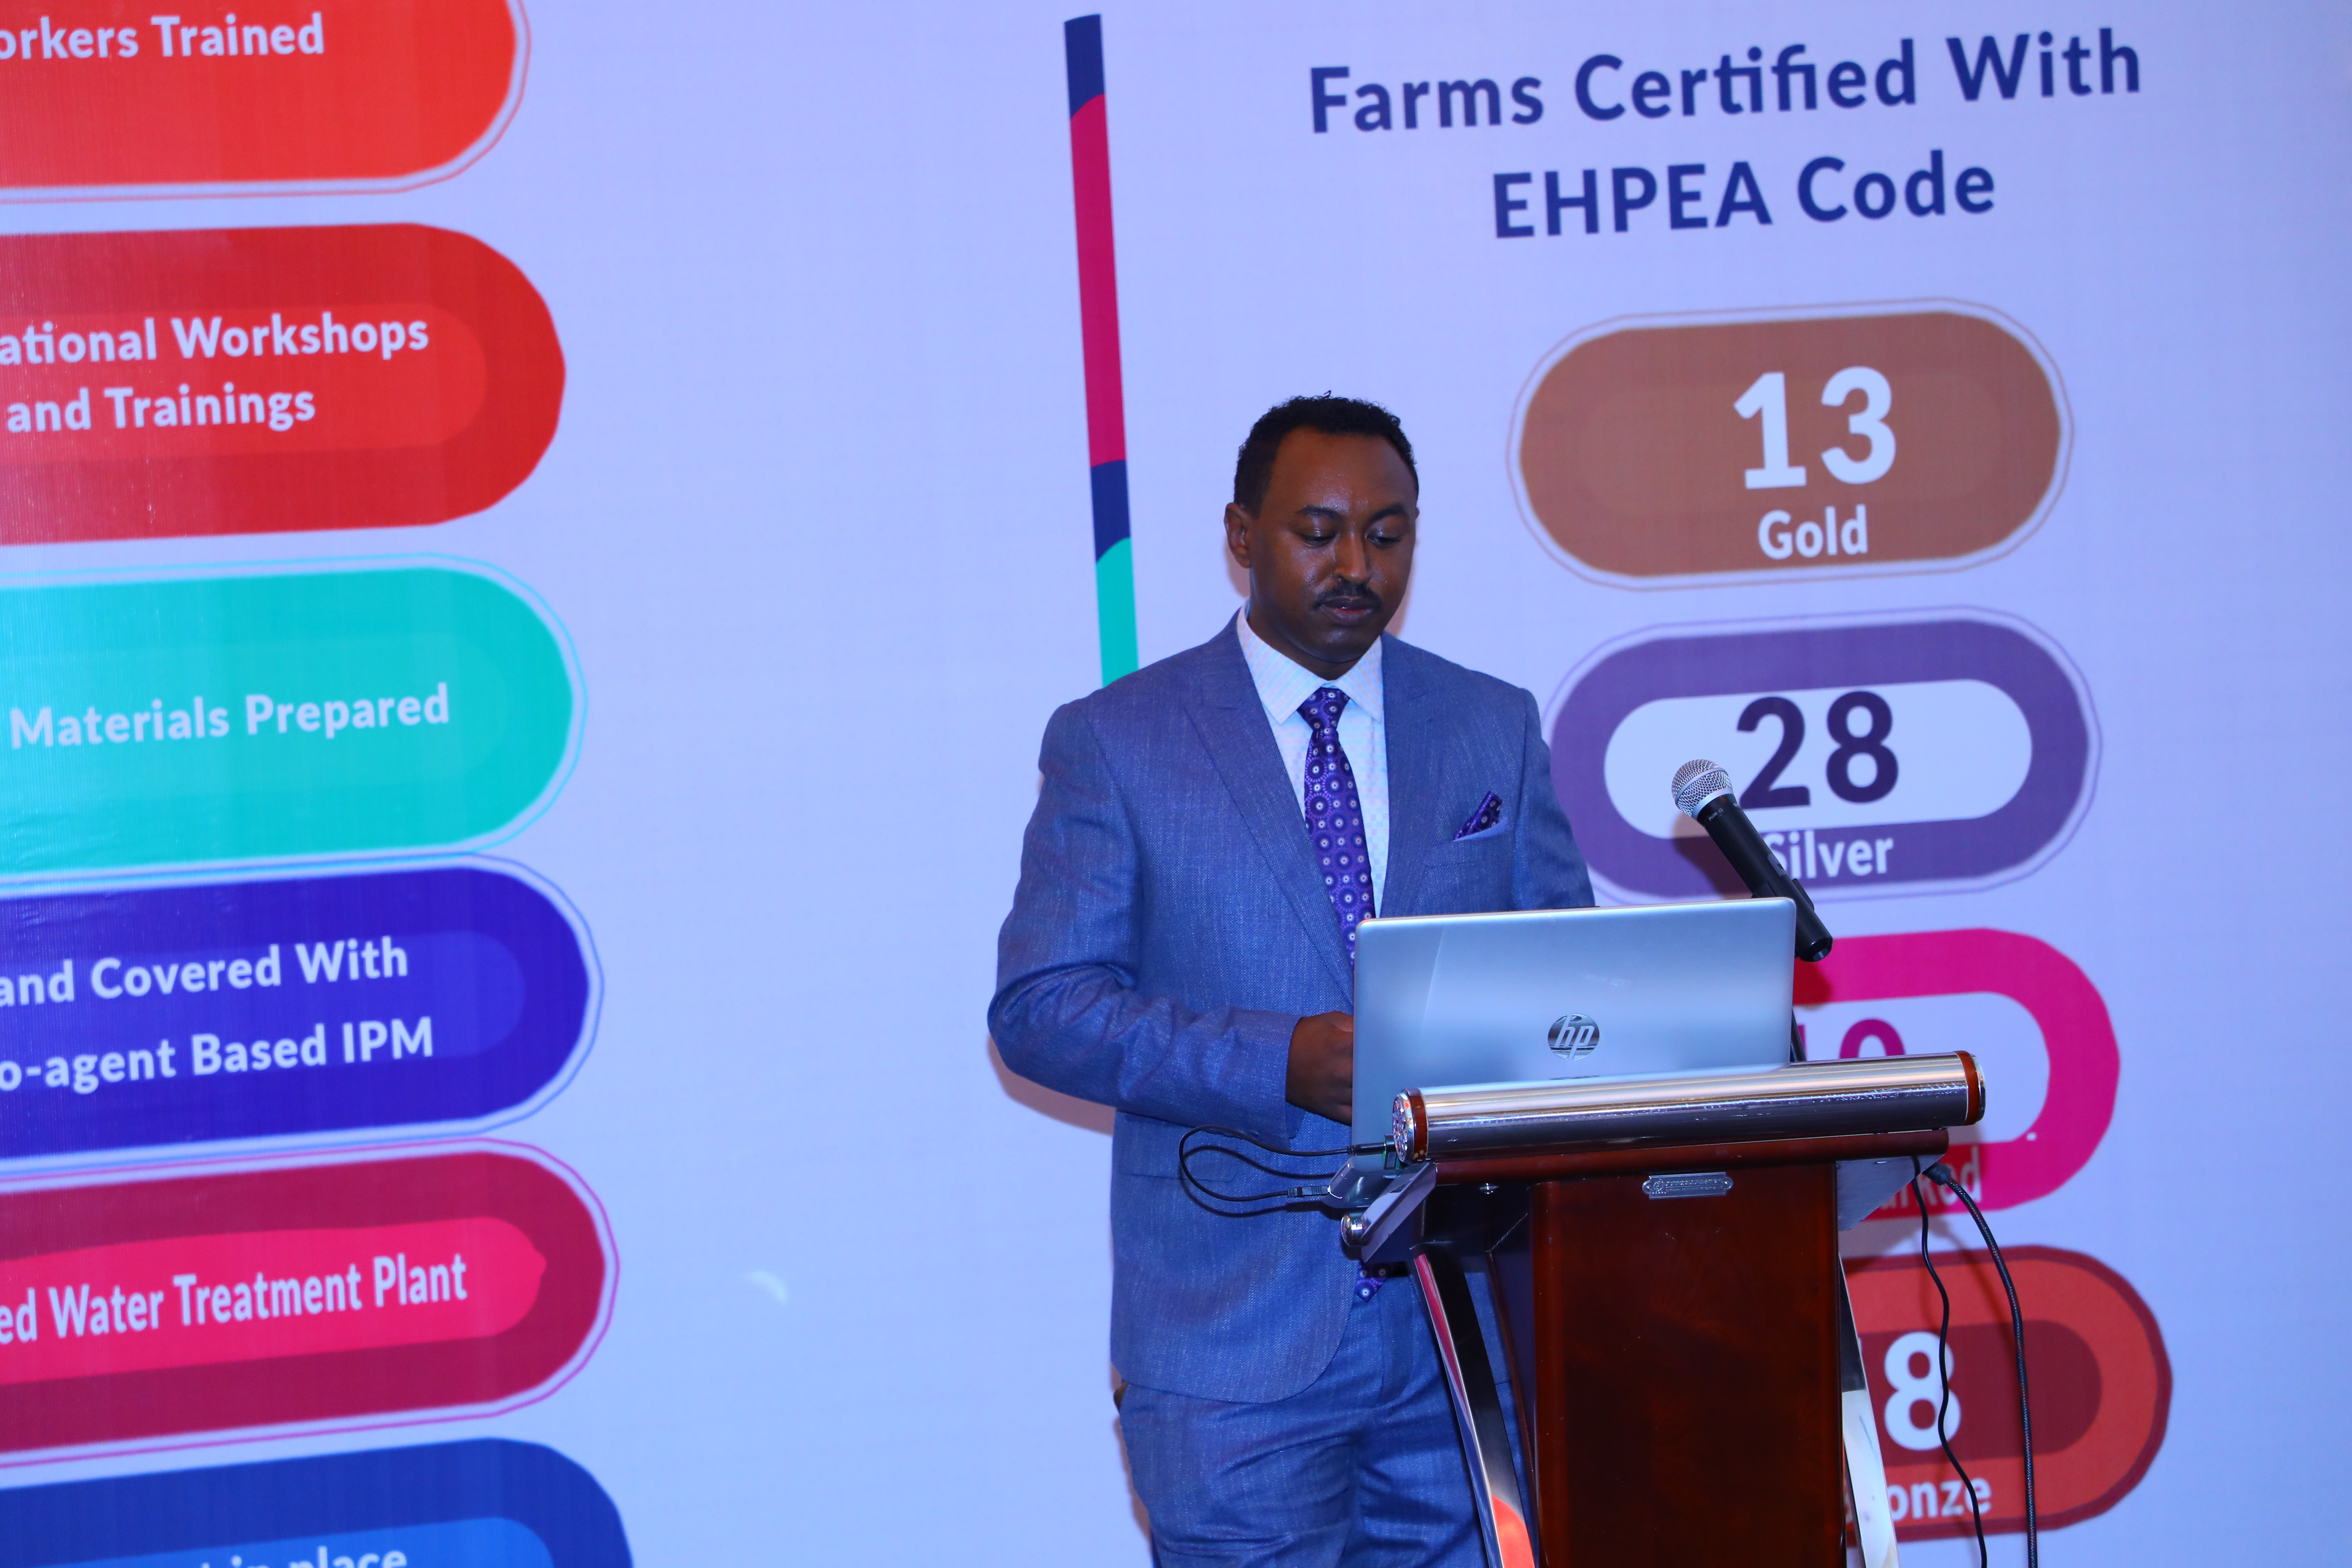 EHPEA launches its accredited TVET Training Institute; ADDIS ABABA, January 28, 2021